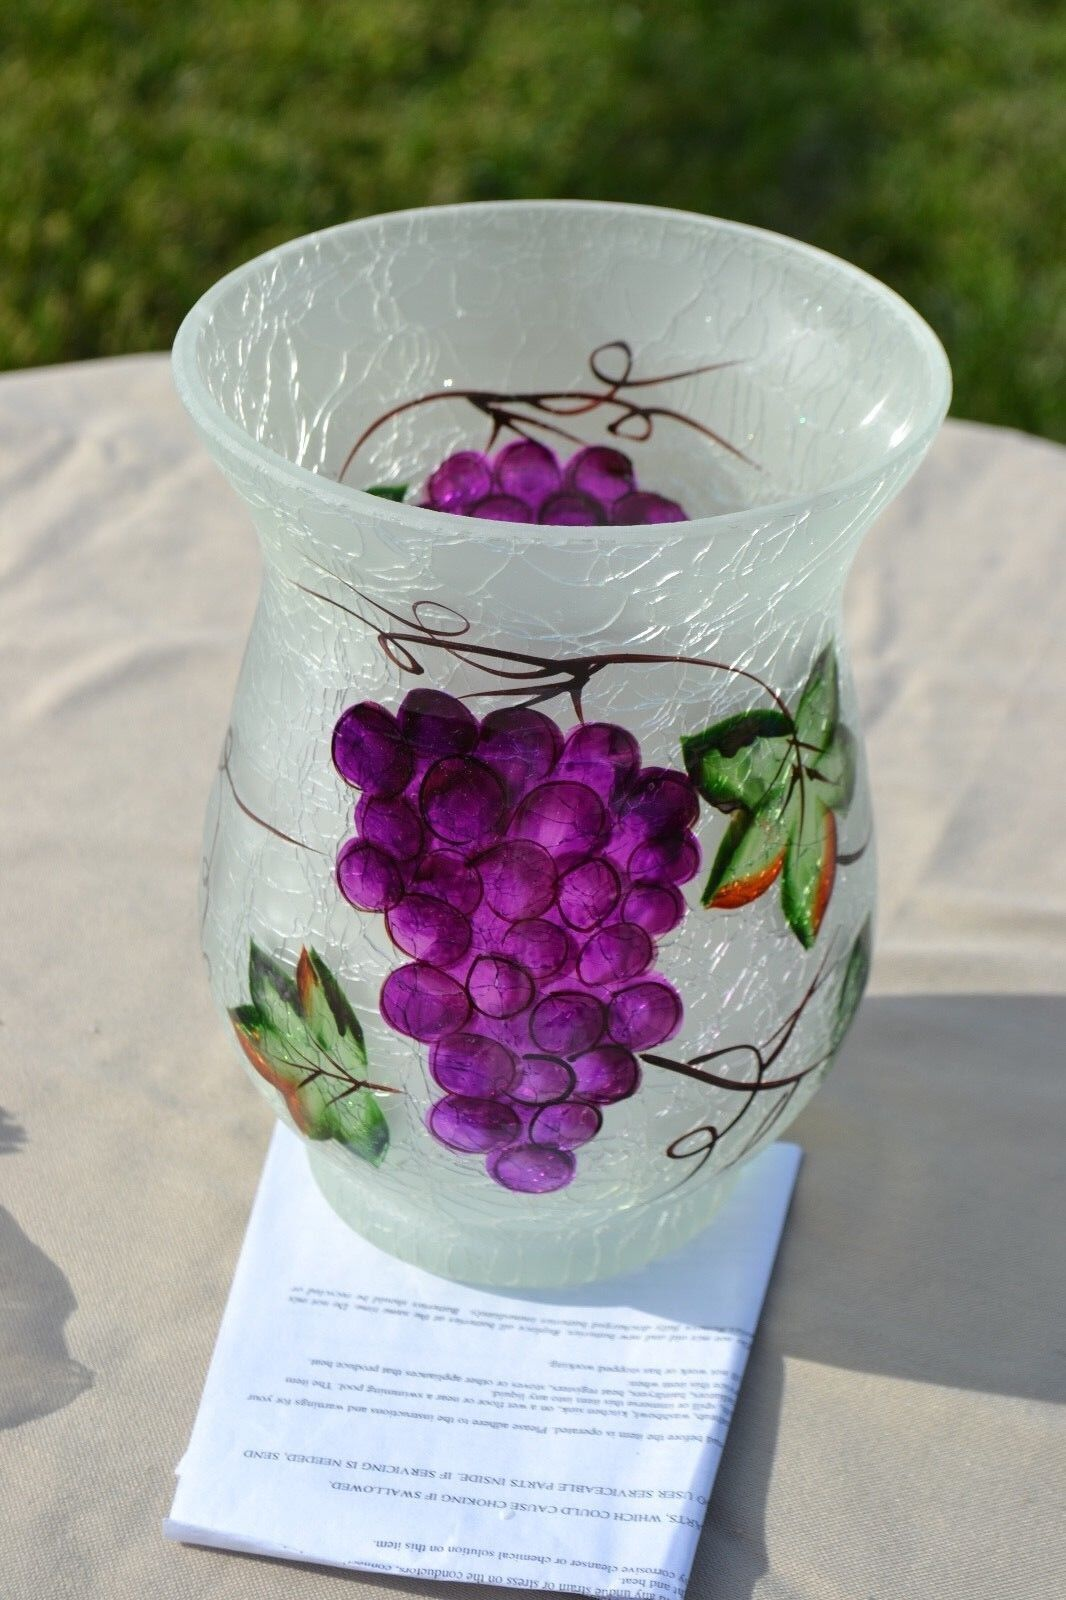 Frosted Glass Vase with Micro Lights by Valerie H203593